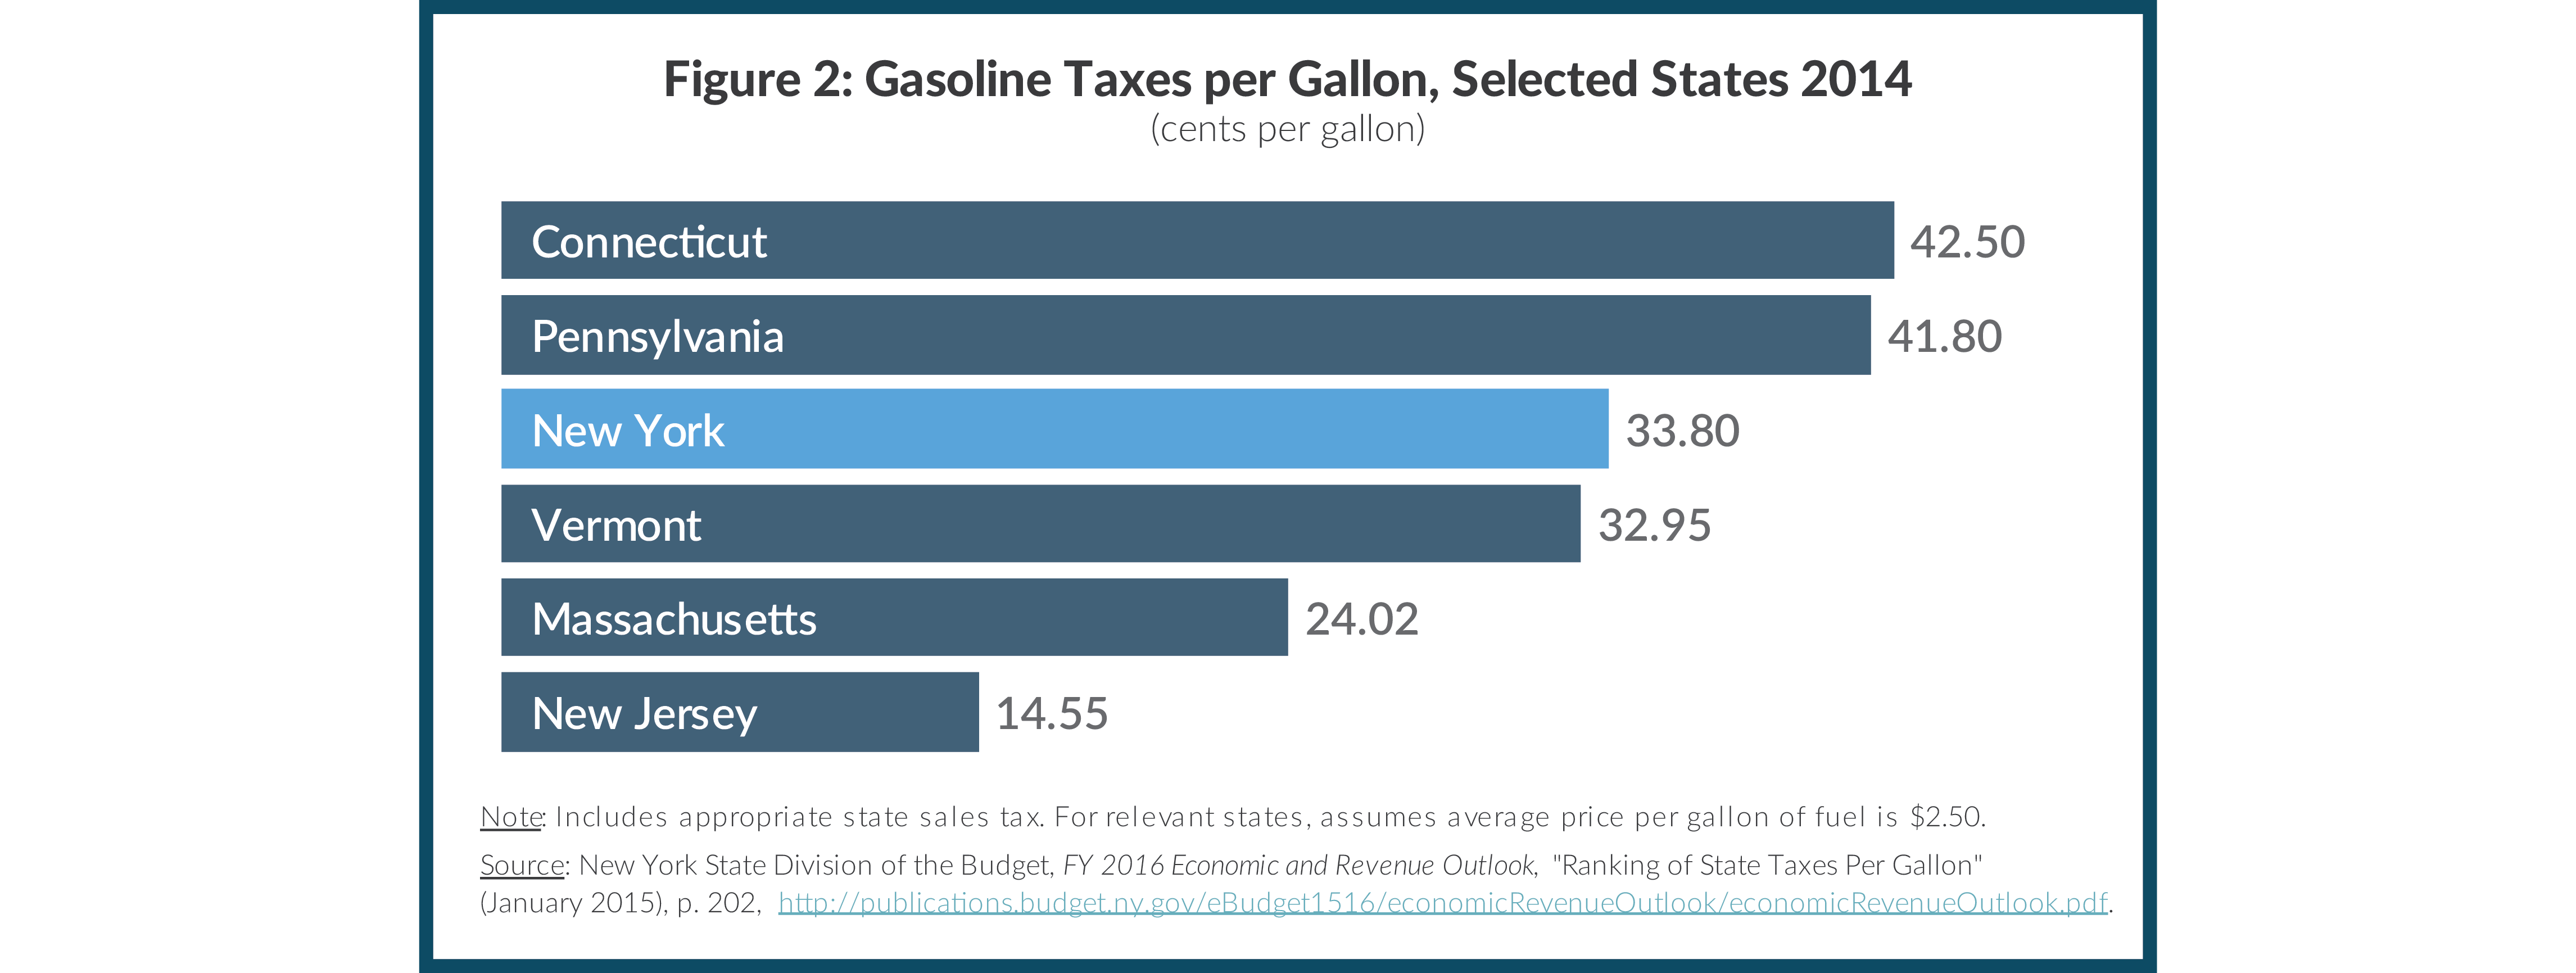 Figure 2: Gasoline Taxes per Gallon, Selected States 2014